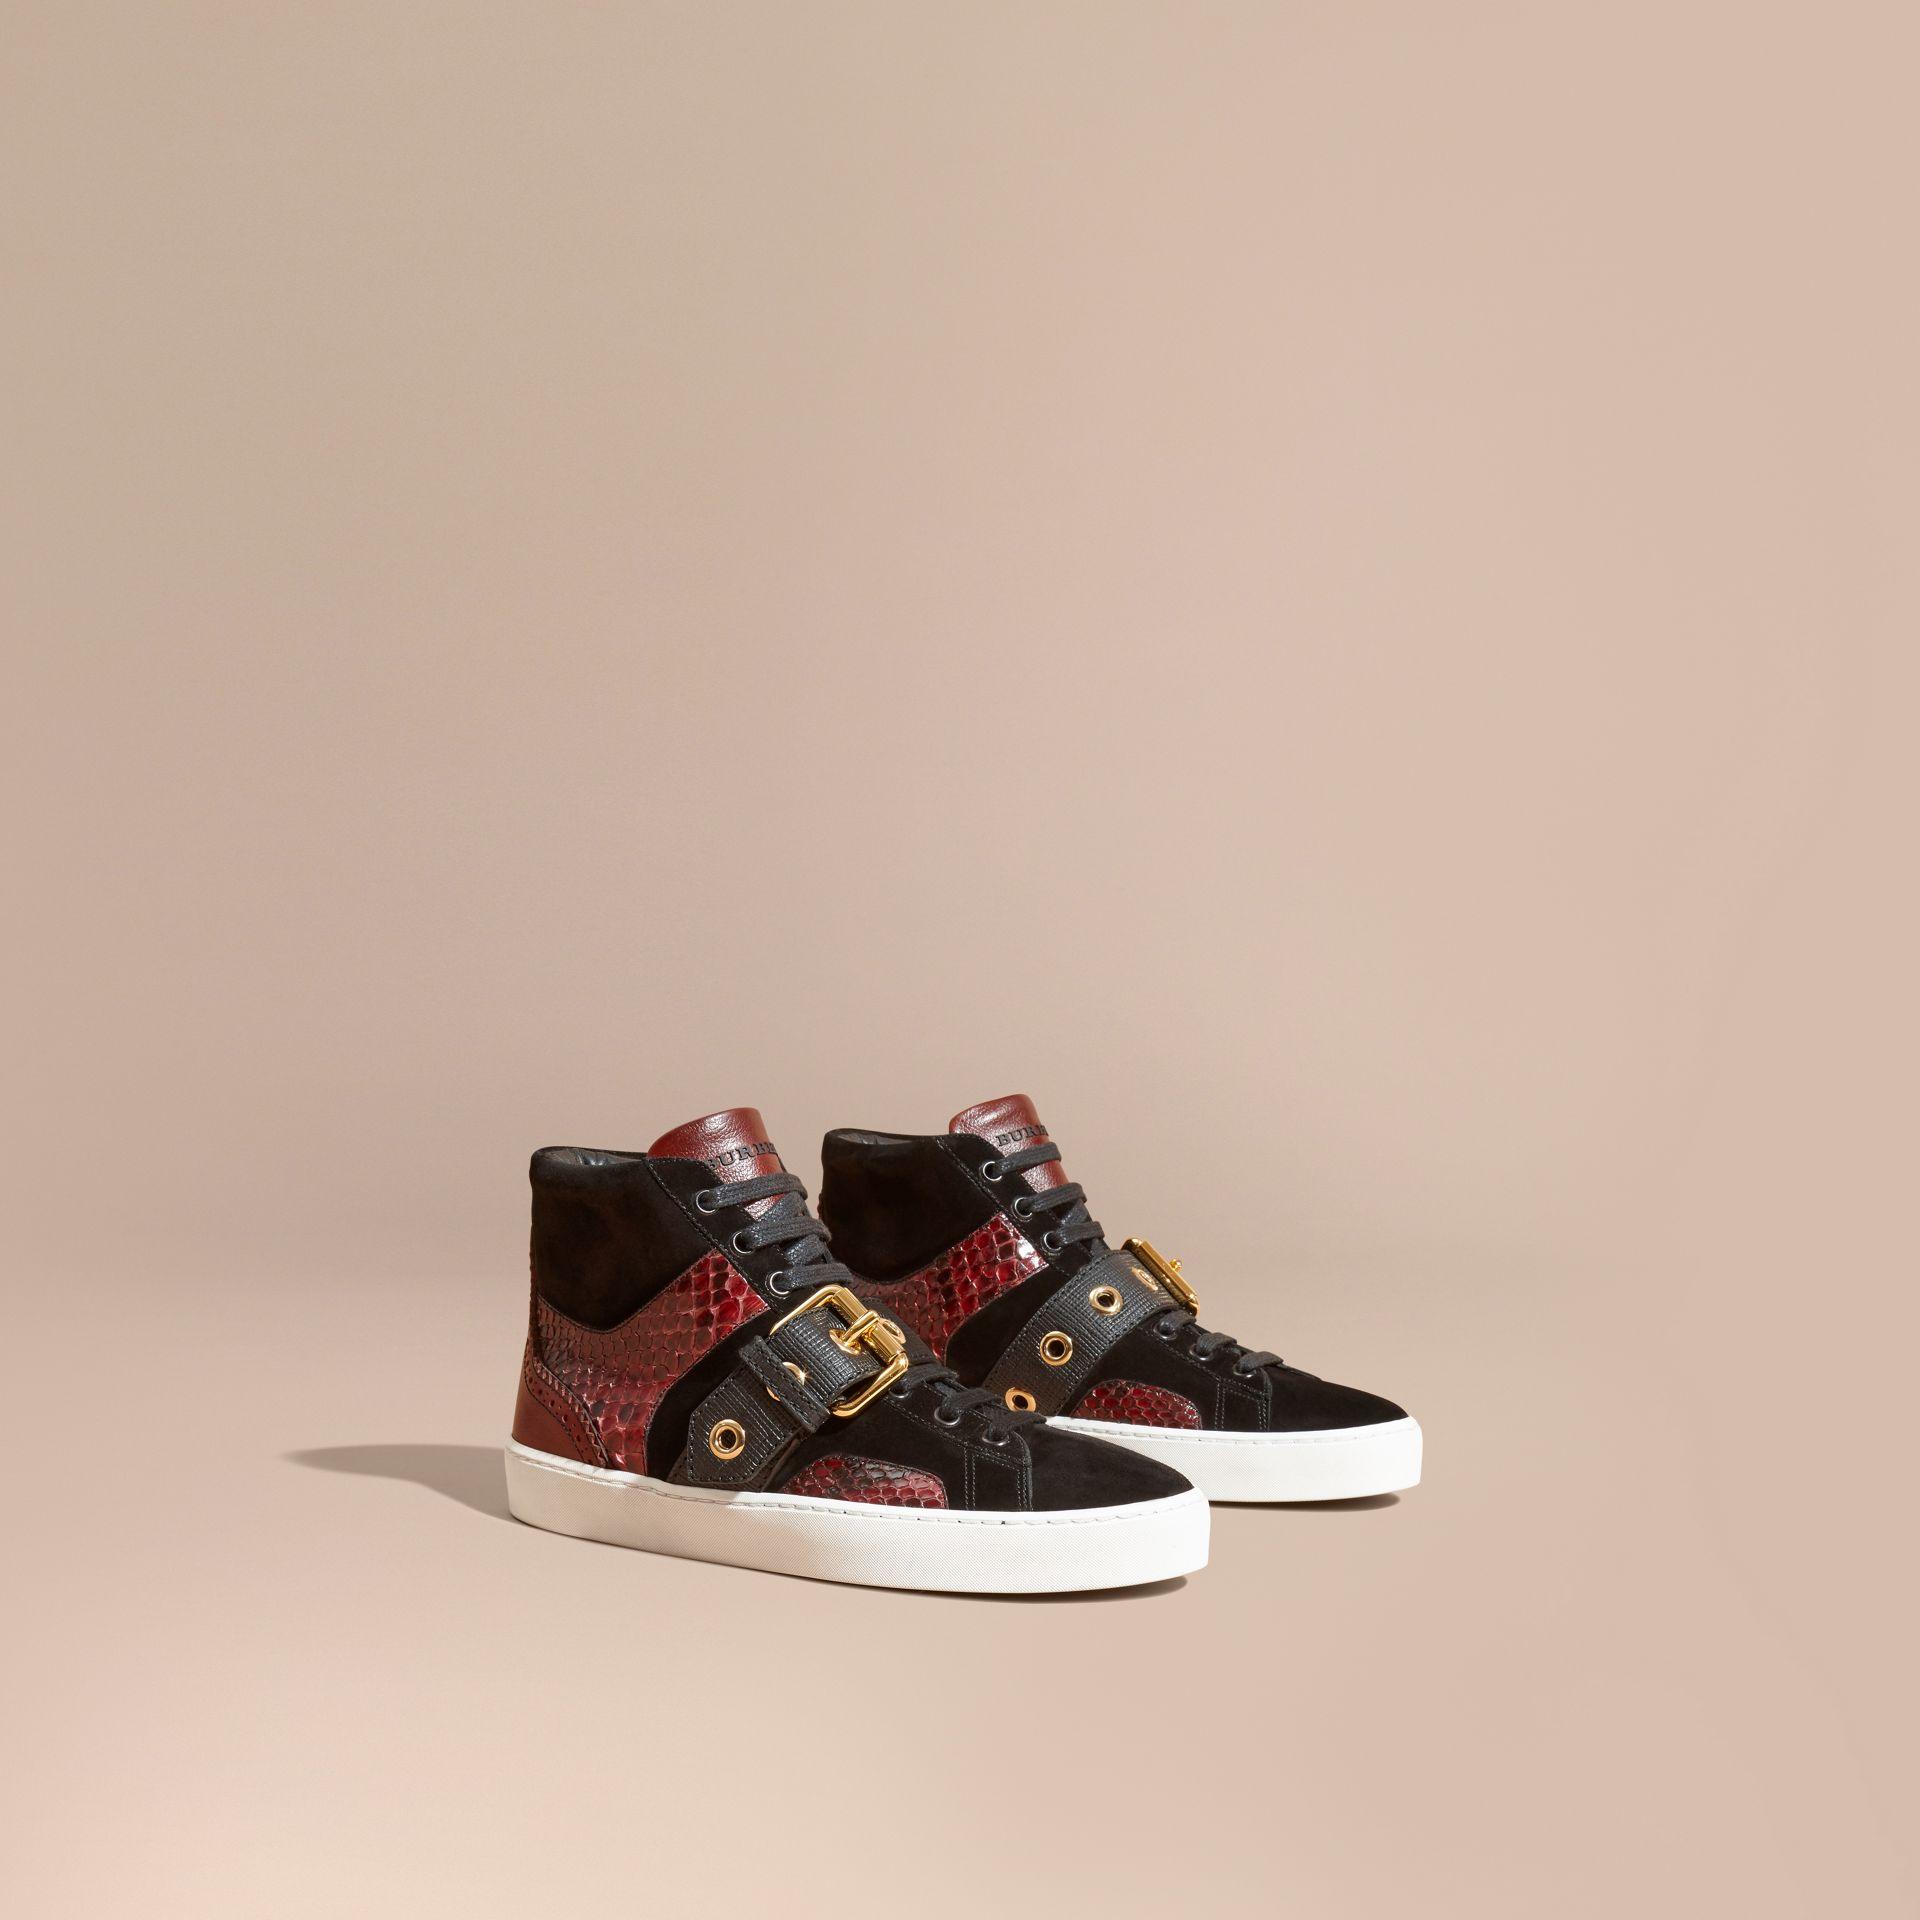 Buckle Detail Leather and Snakeskin High-top Trainers in Bordeaux - gallery image 1